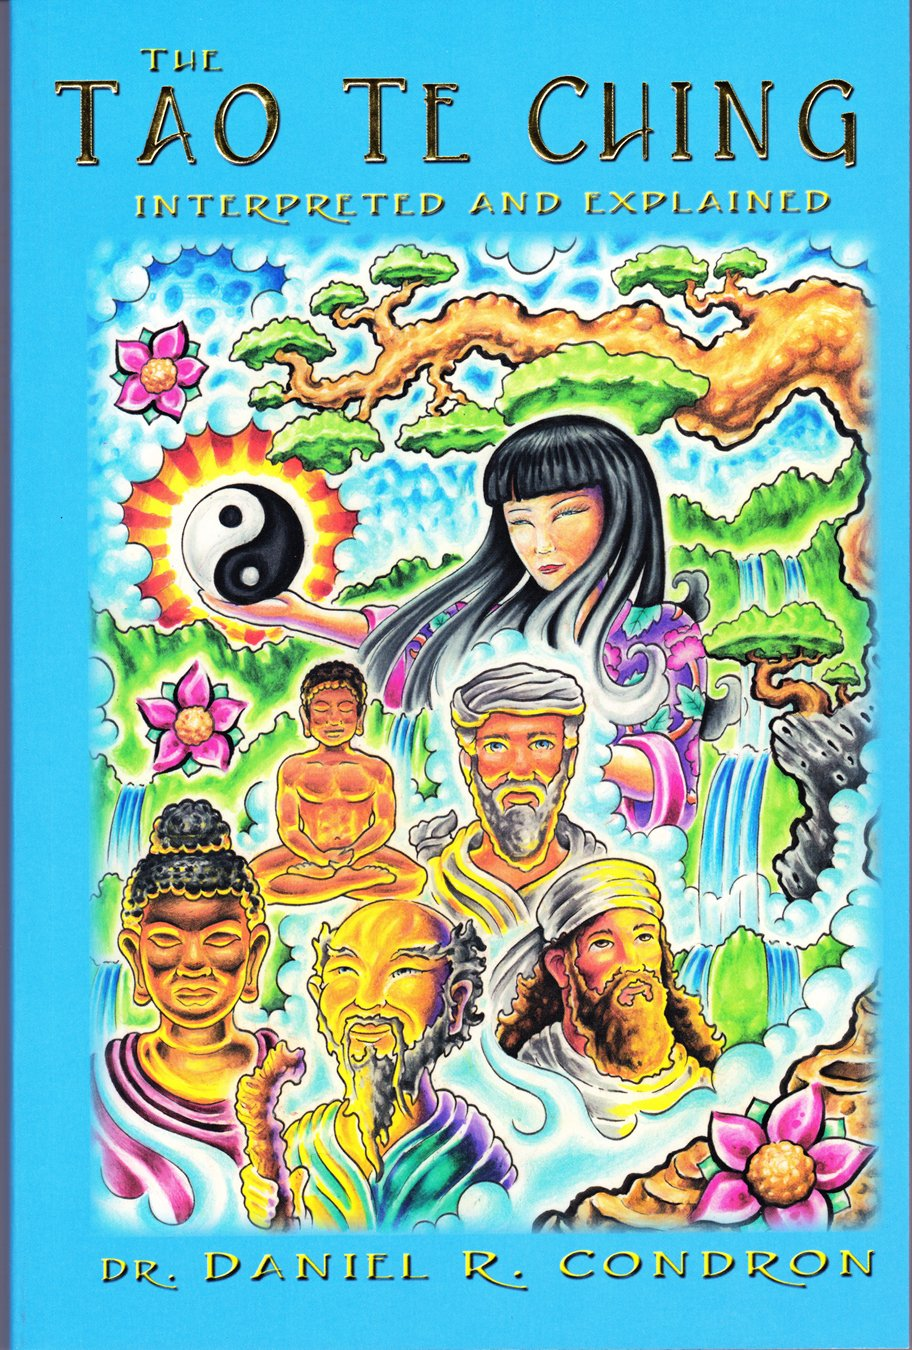 The Tao Te Ching Interpreted and Explained: A Superconscious and Subconscious Explanation According to Universal Principles, Universal Laws, Universal